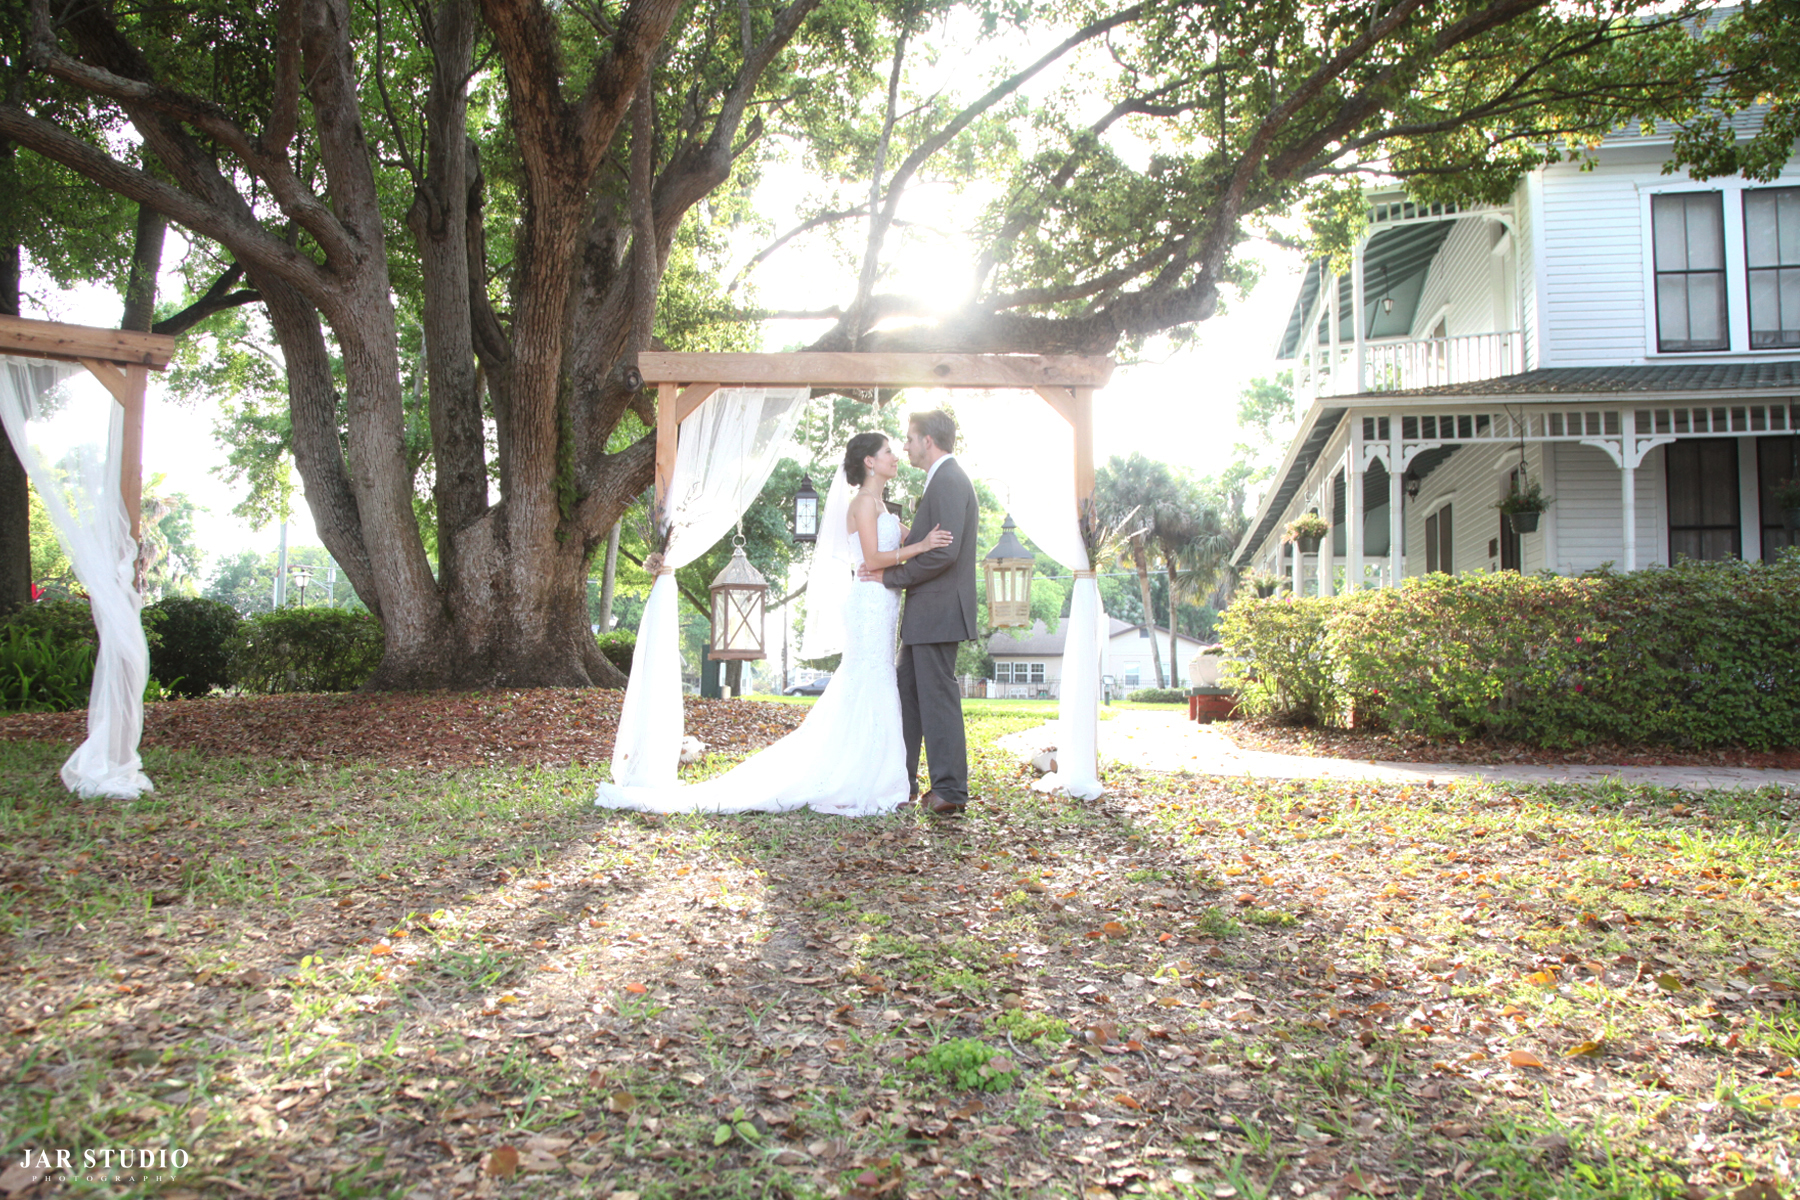 The Withers-Maguire-House-wedding-photographer-jarstudio (23).JPG